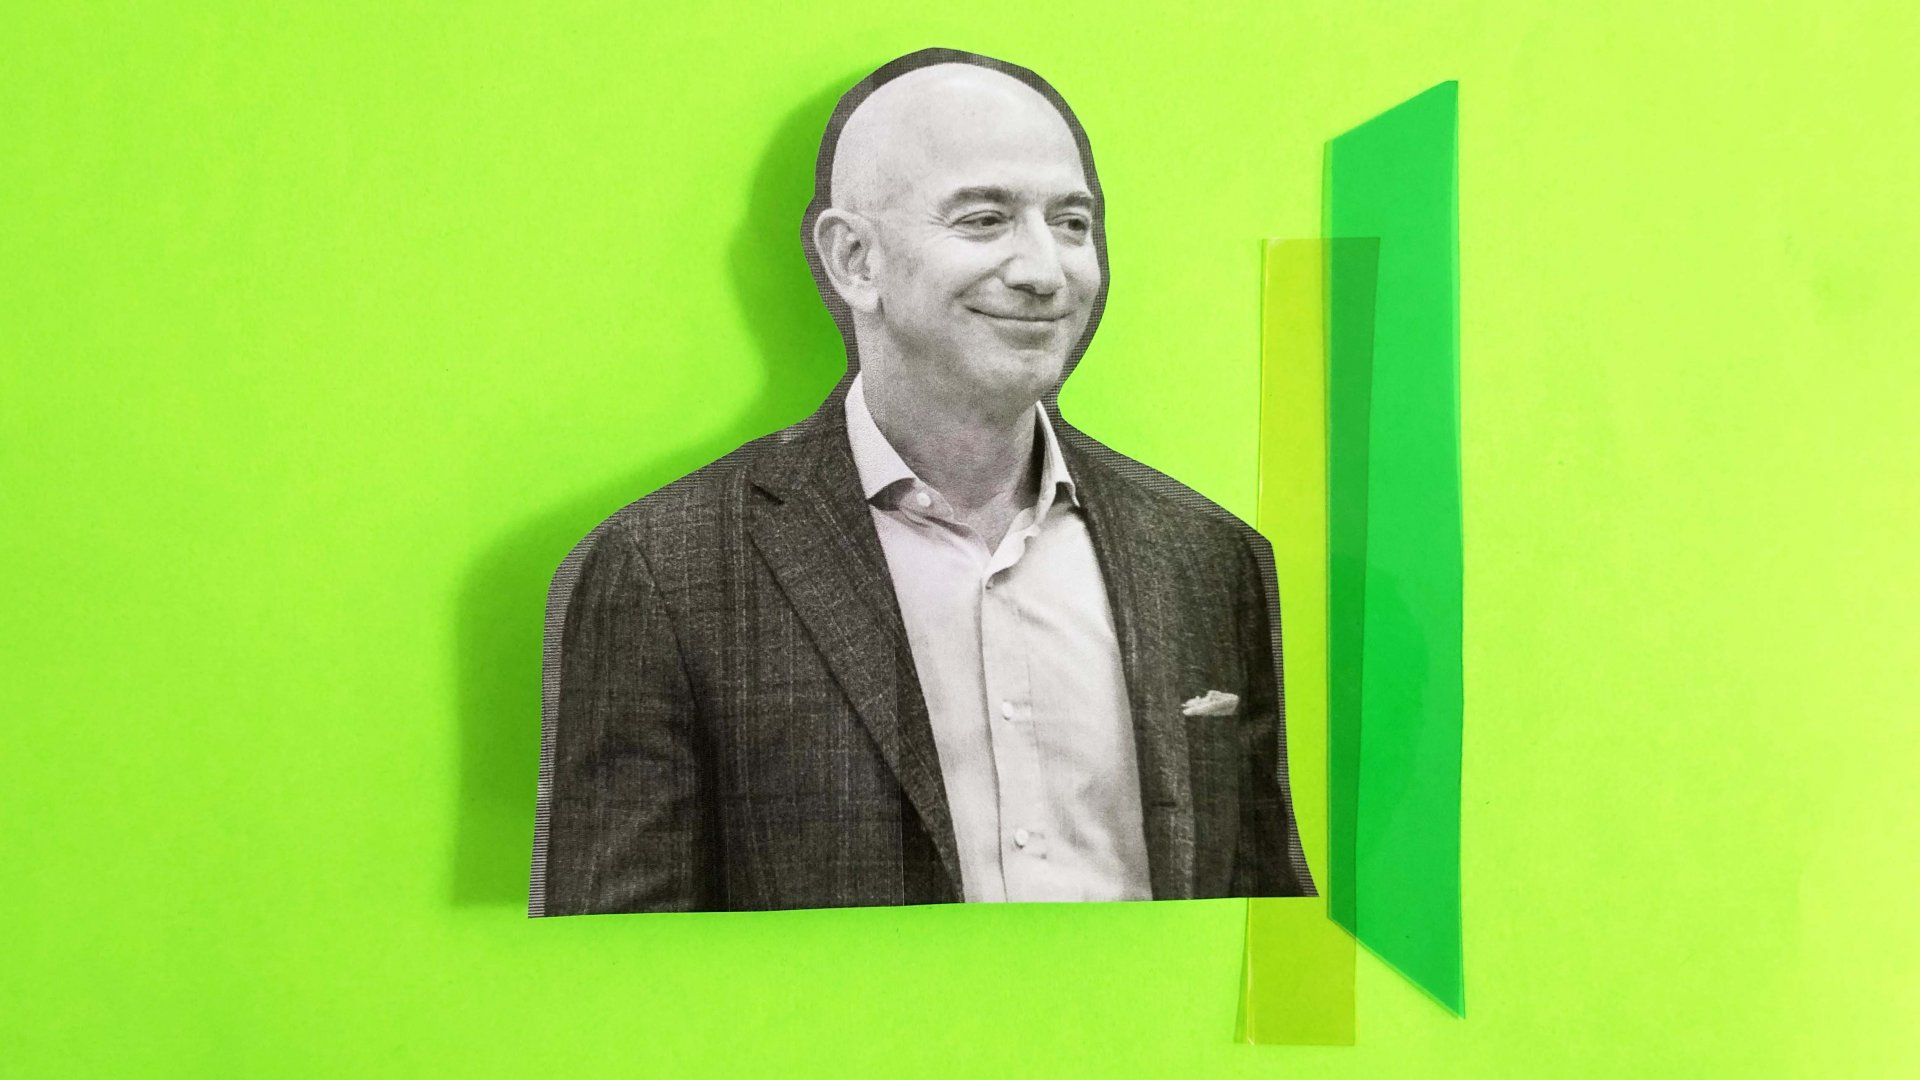 5 Lessons for Leaders From Jeff Bezos's Succession Planning